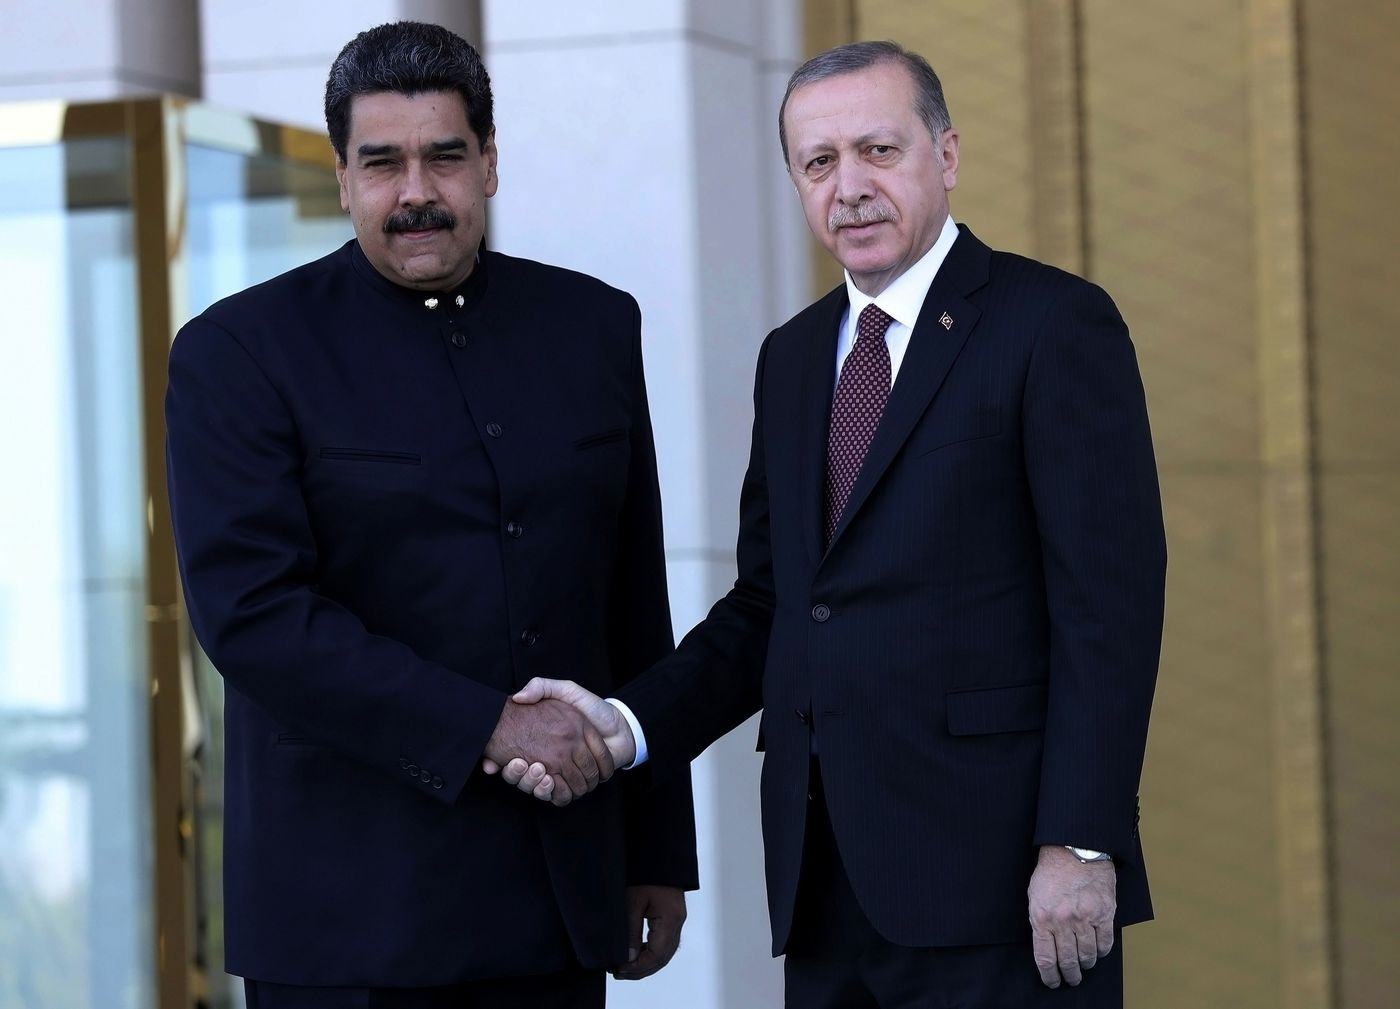 TURKEY-VENEZUELA-DIPLOMACY